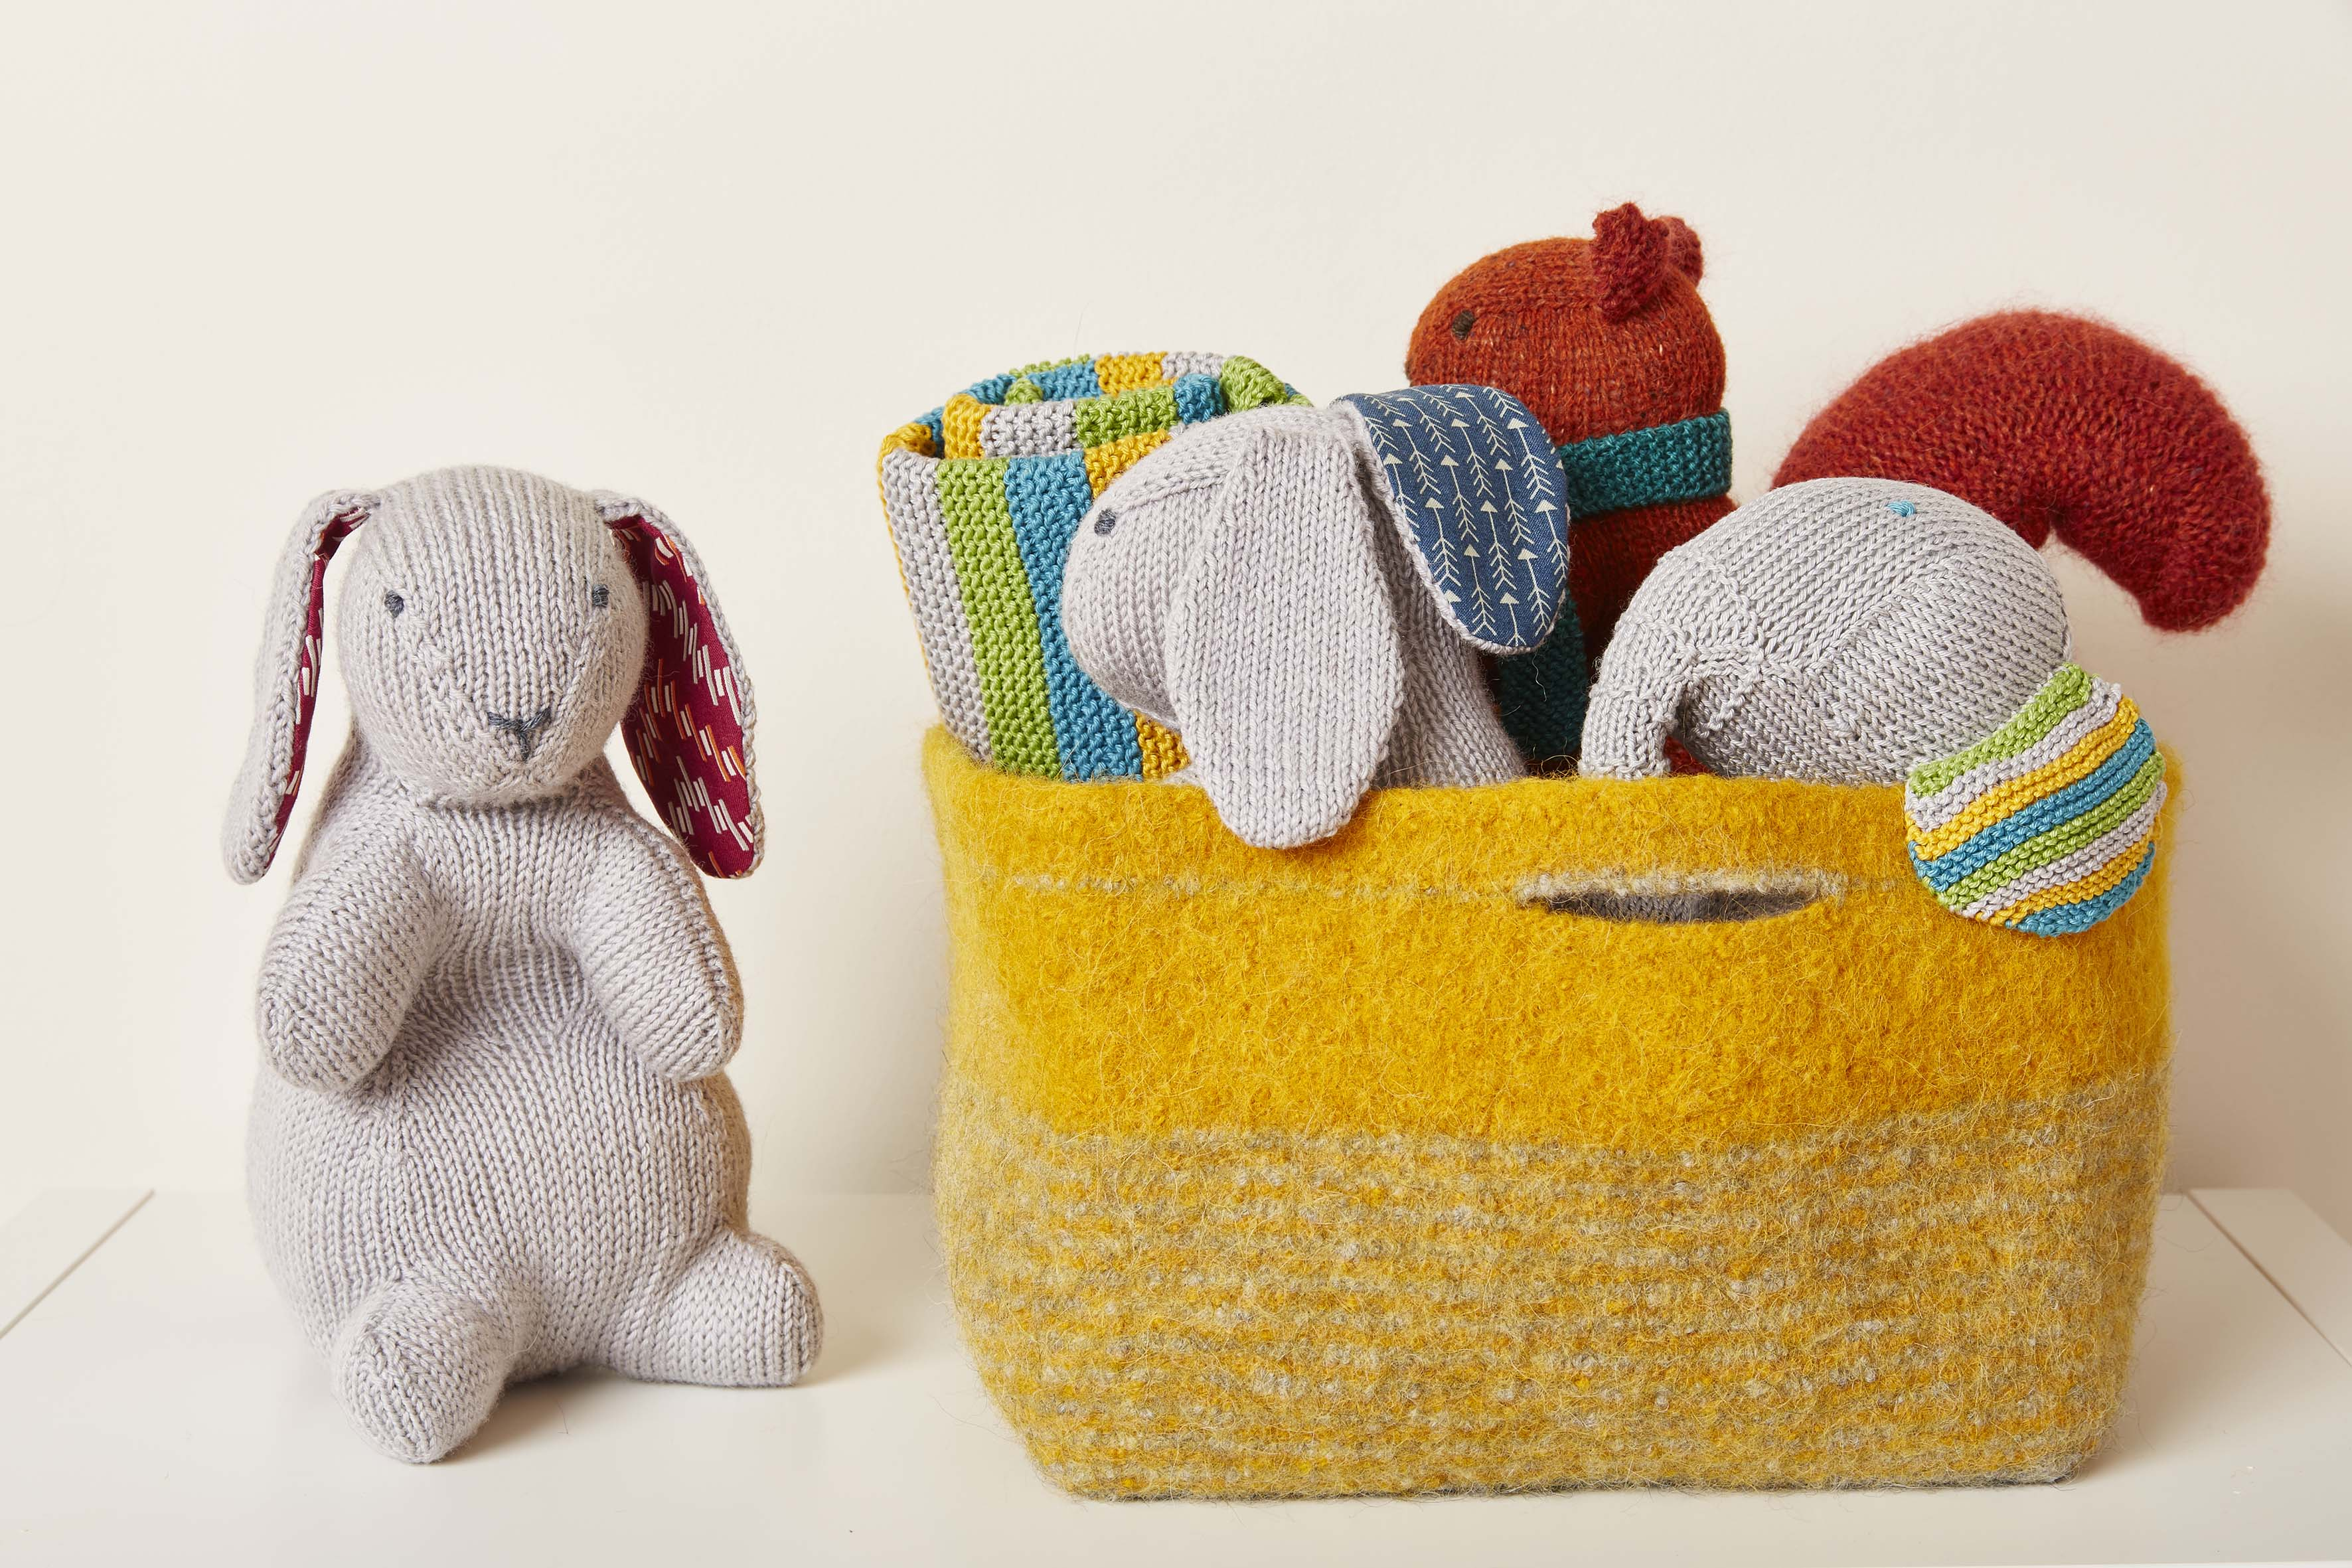 Knitted Nursey Collection Bertie and Toy Bea Bunnies